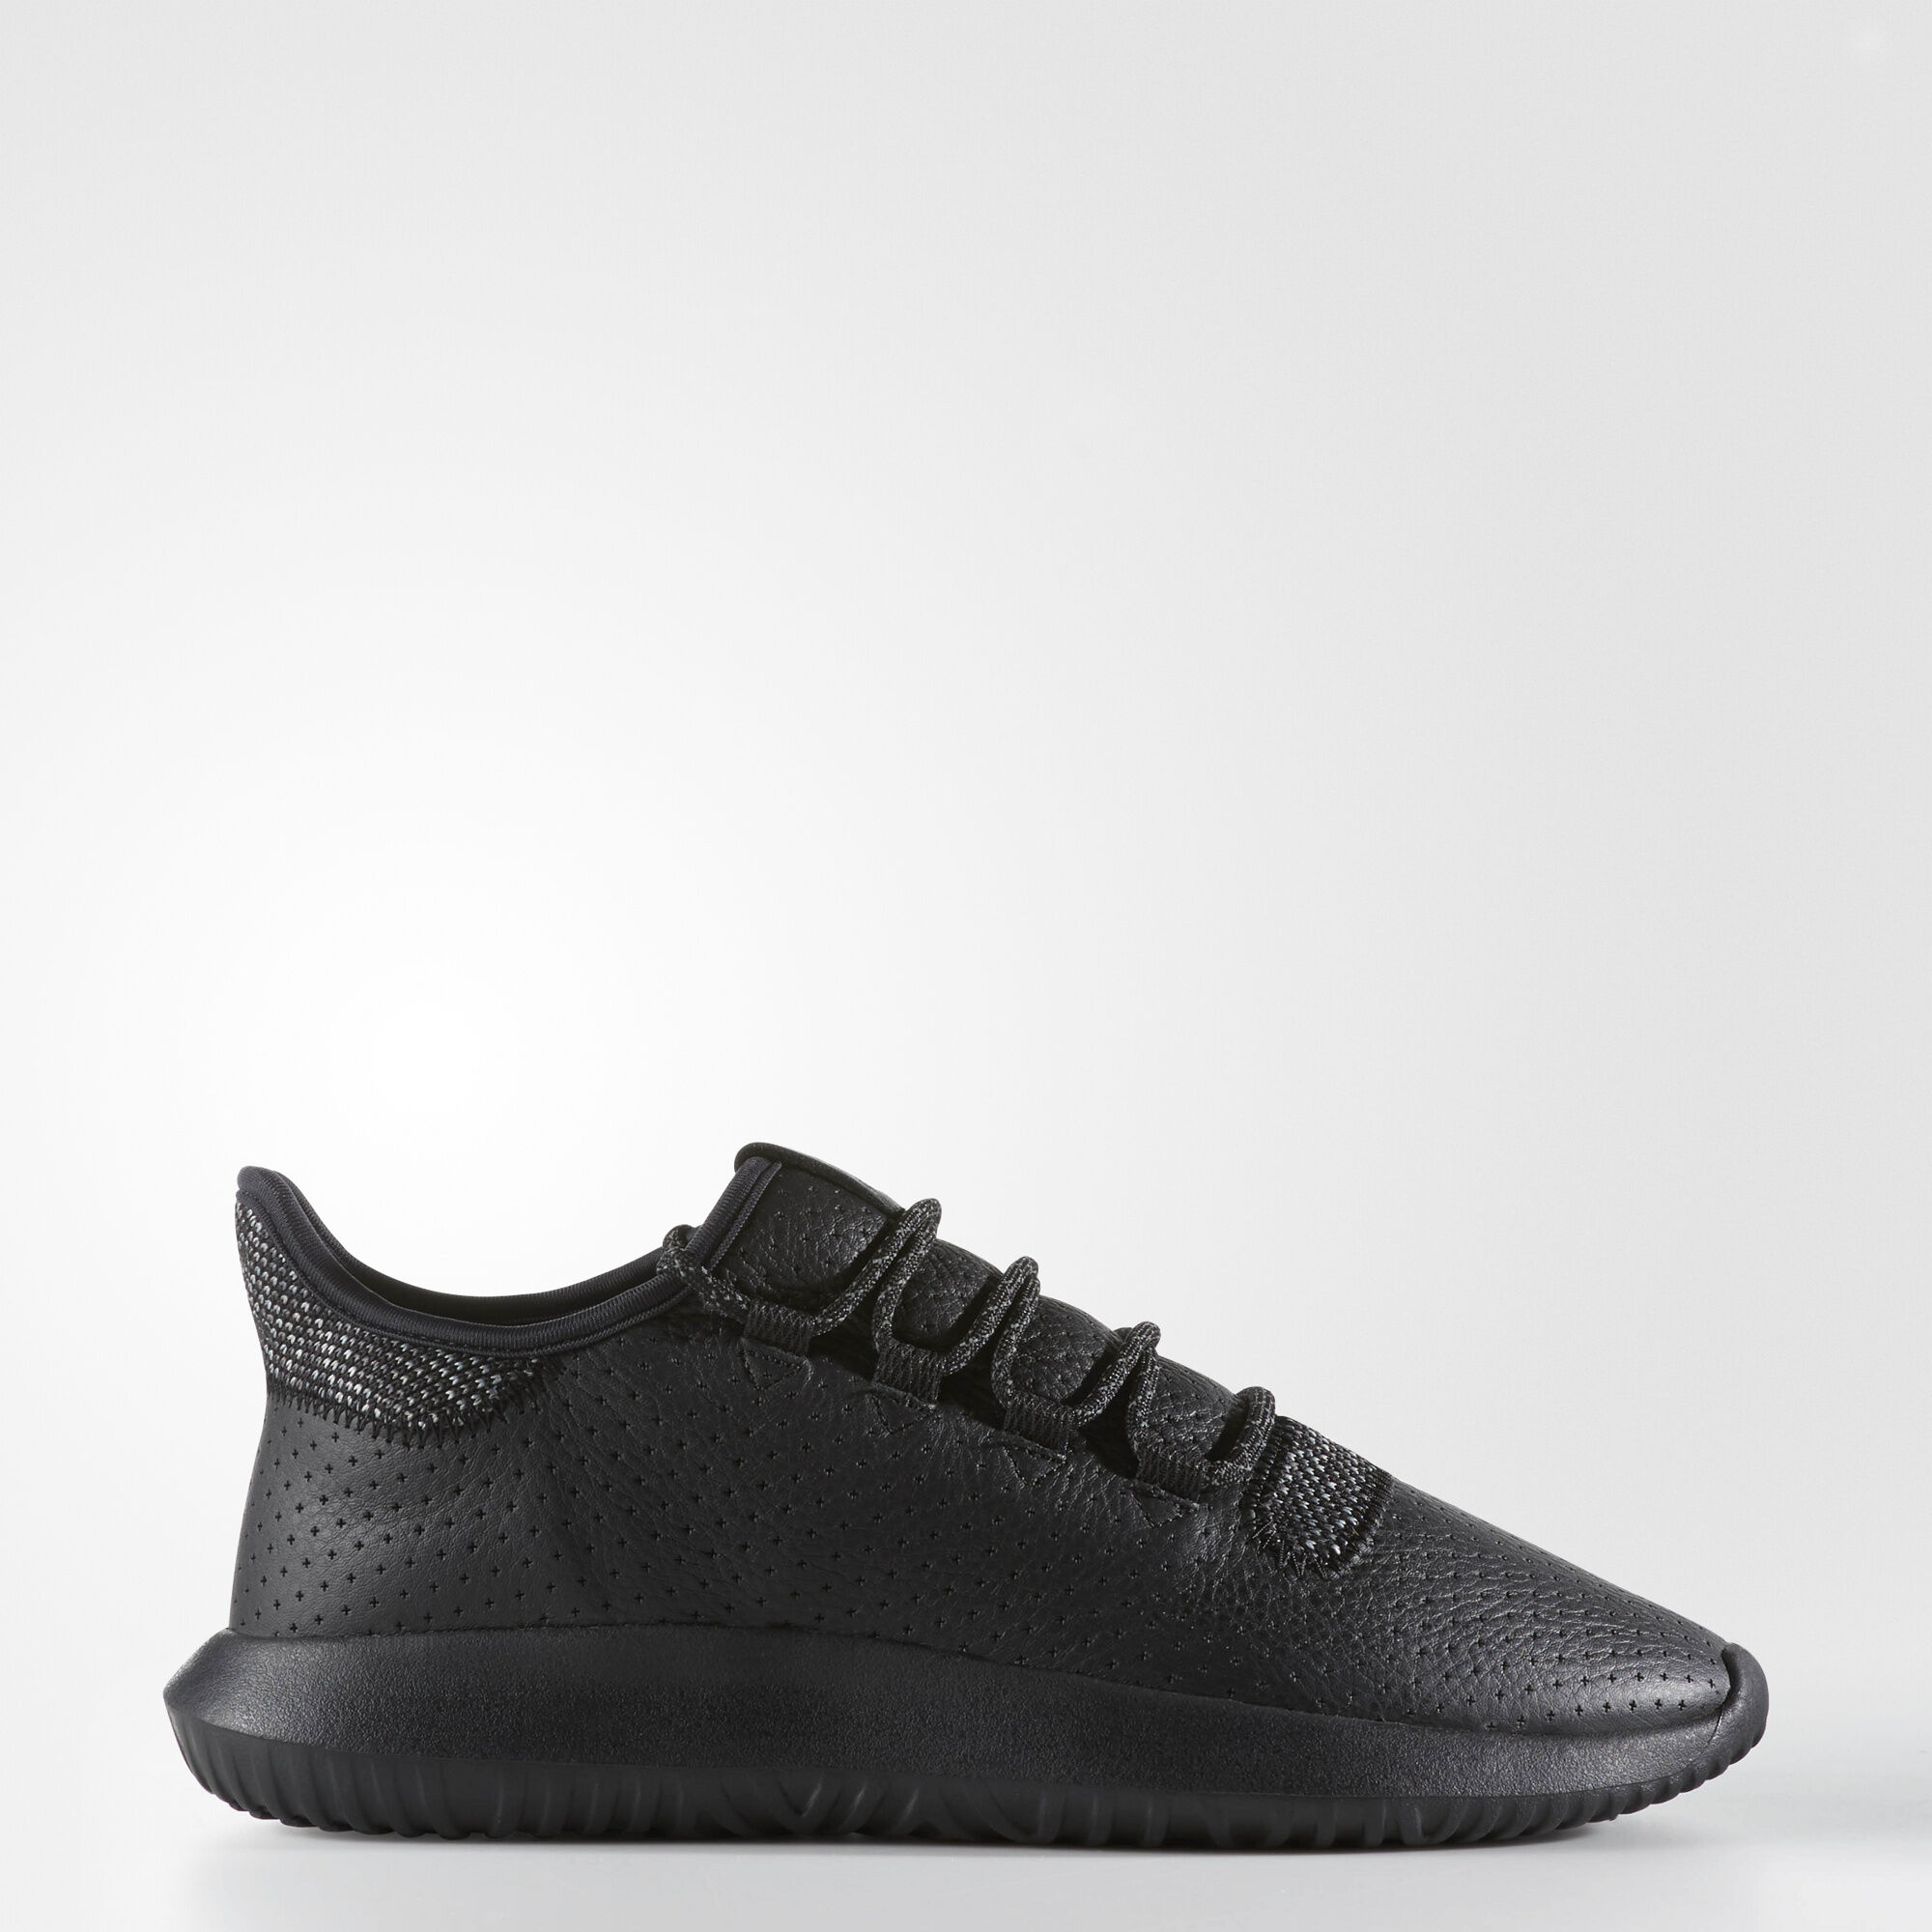 Adidas Tubular Black Grey